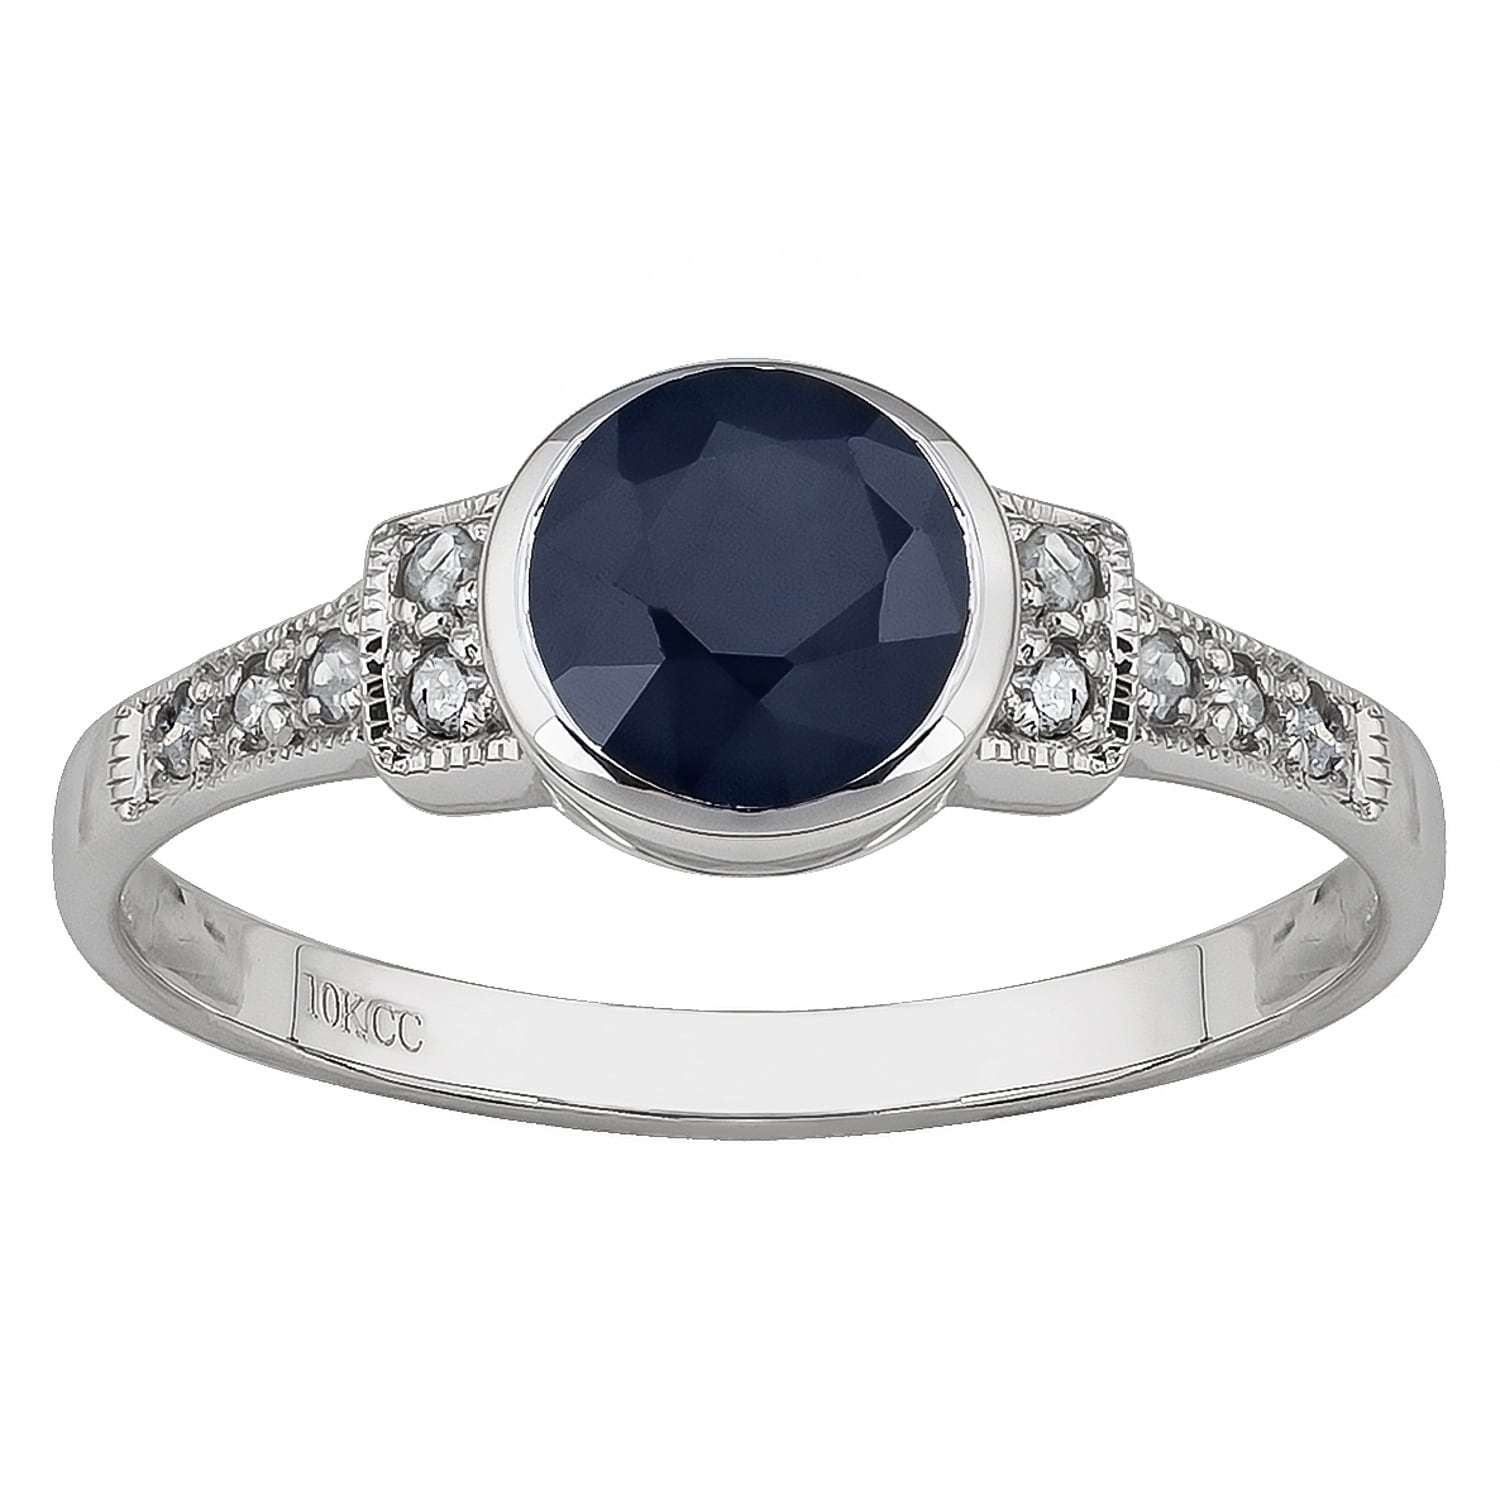 Shop Viducci 10K White Gold Vintage Style Genuine Sapphire And Pertaining To 2018 Vintage Style Sapphire Engagement Rings (Gallery 8 of 15)